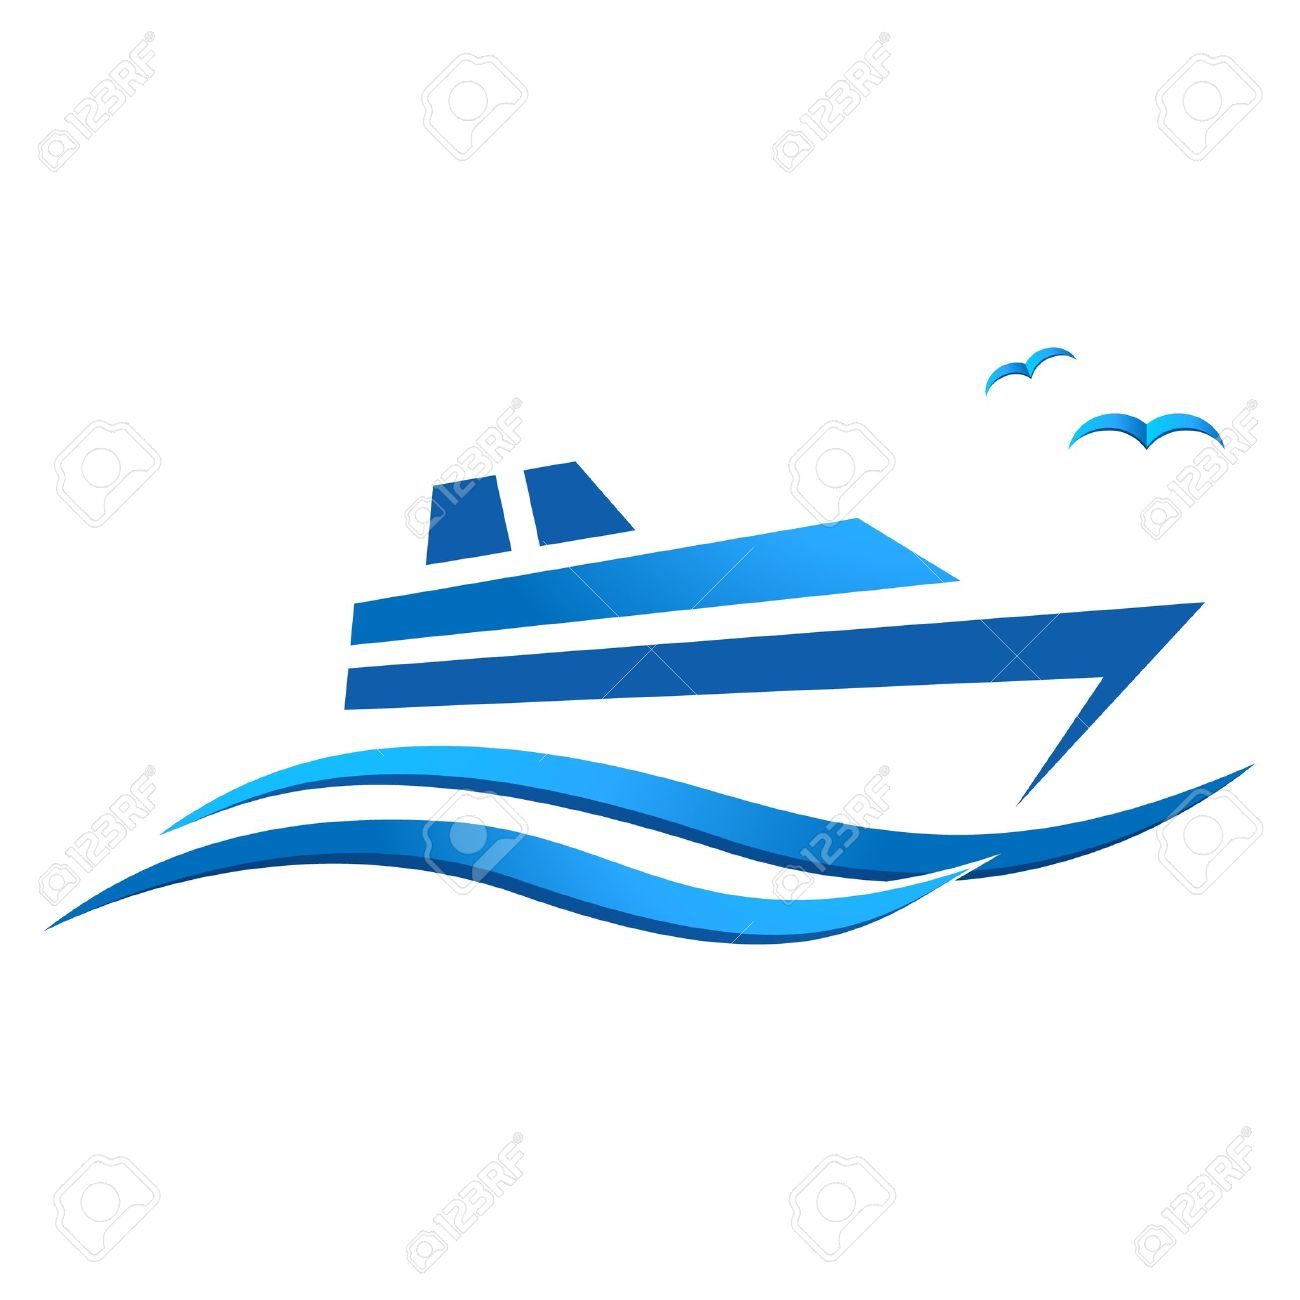 cruise ship royalty free cliparts vectors and stock illustration